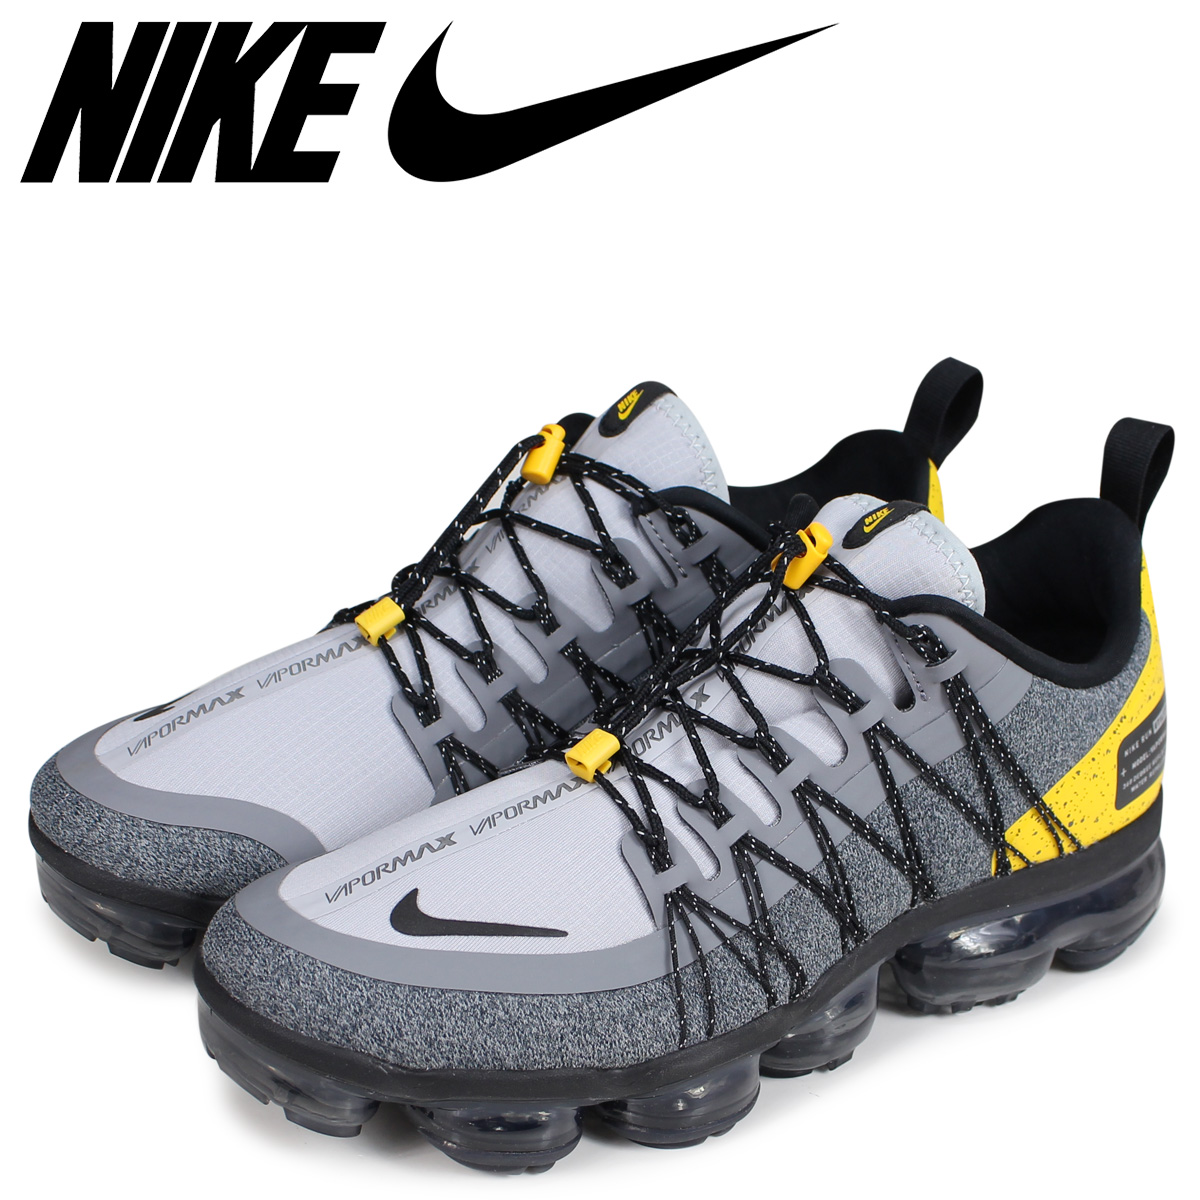 c8d3ba2c9b NIKE Nike air vapor max sneakers men AIR VAPORMAX RUN UTILITY gray AQ8810- 010 ...